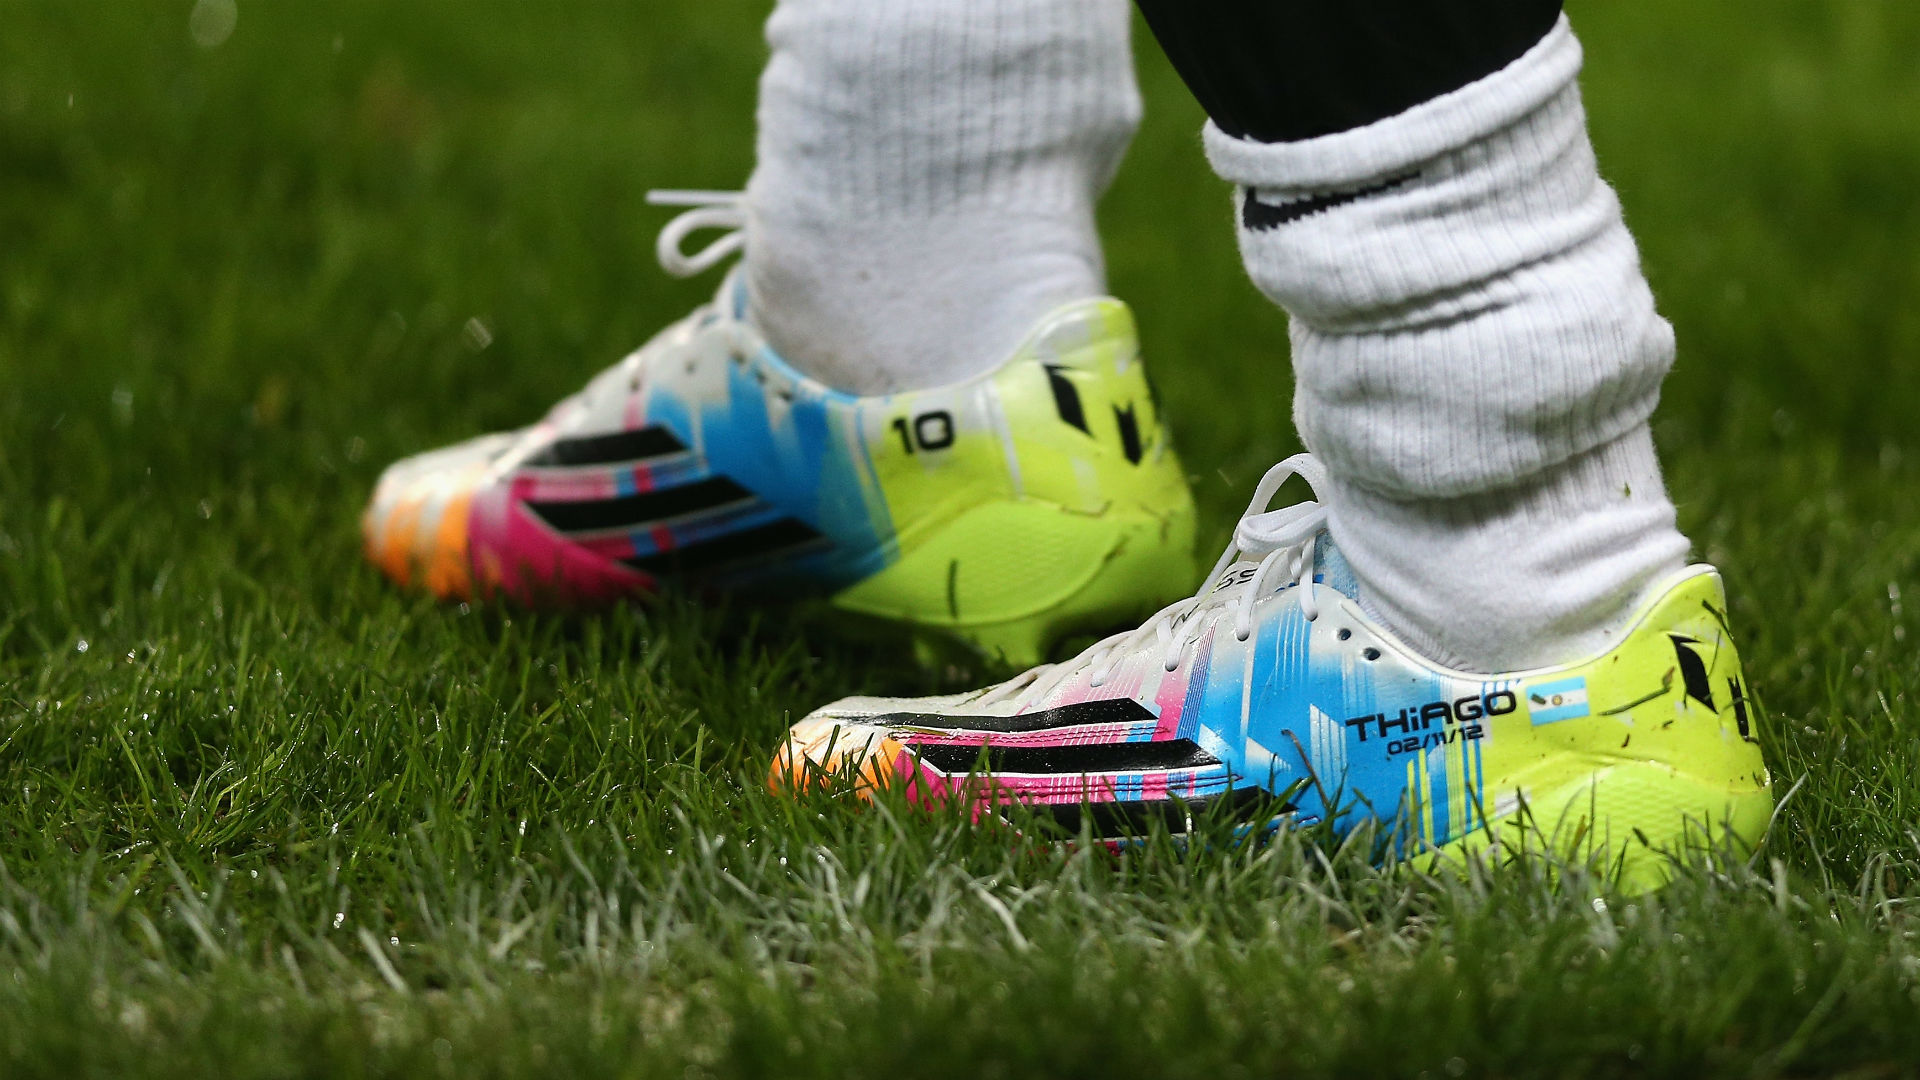 Messi his first signature boot